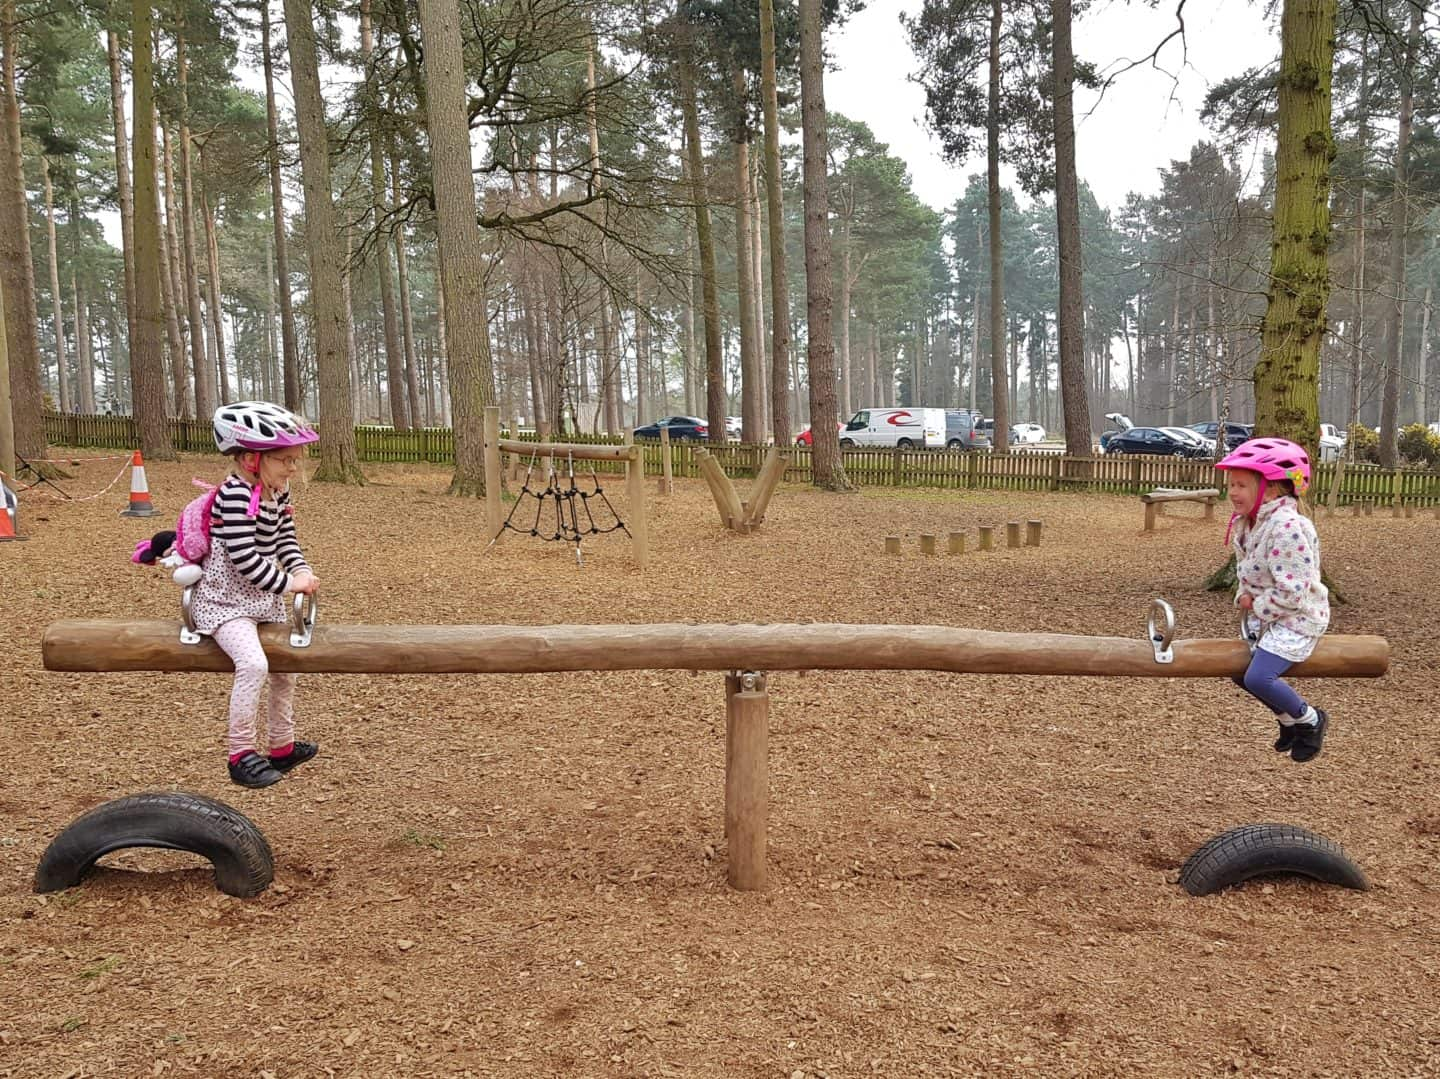 girls on seesaw at park